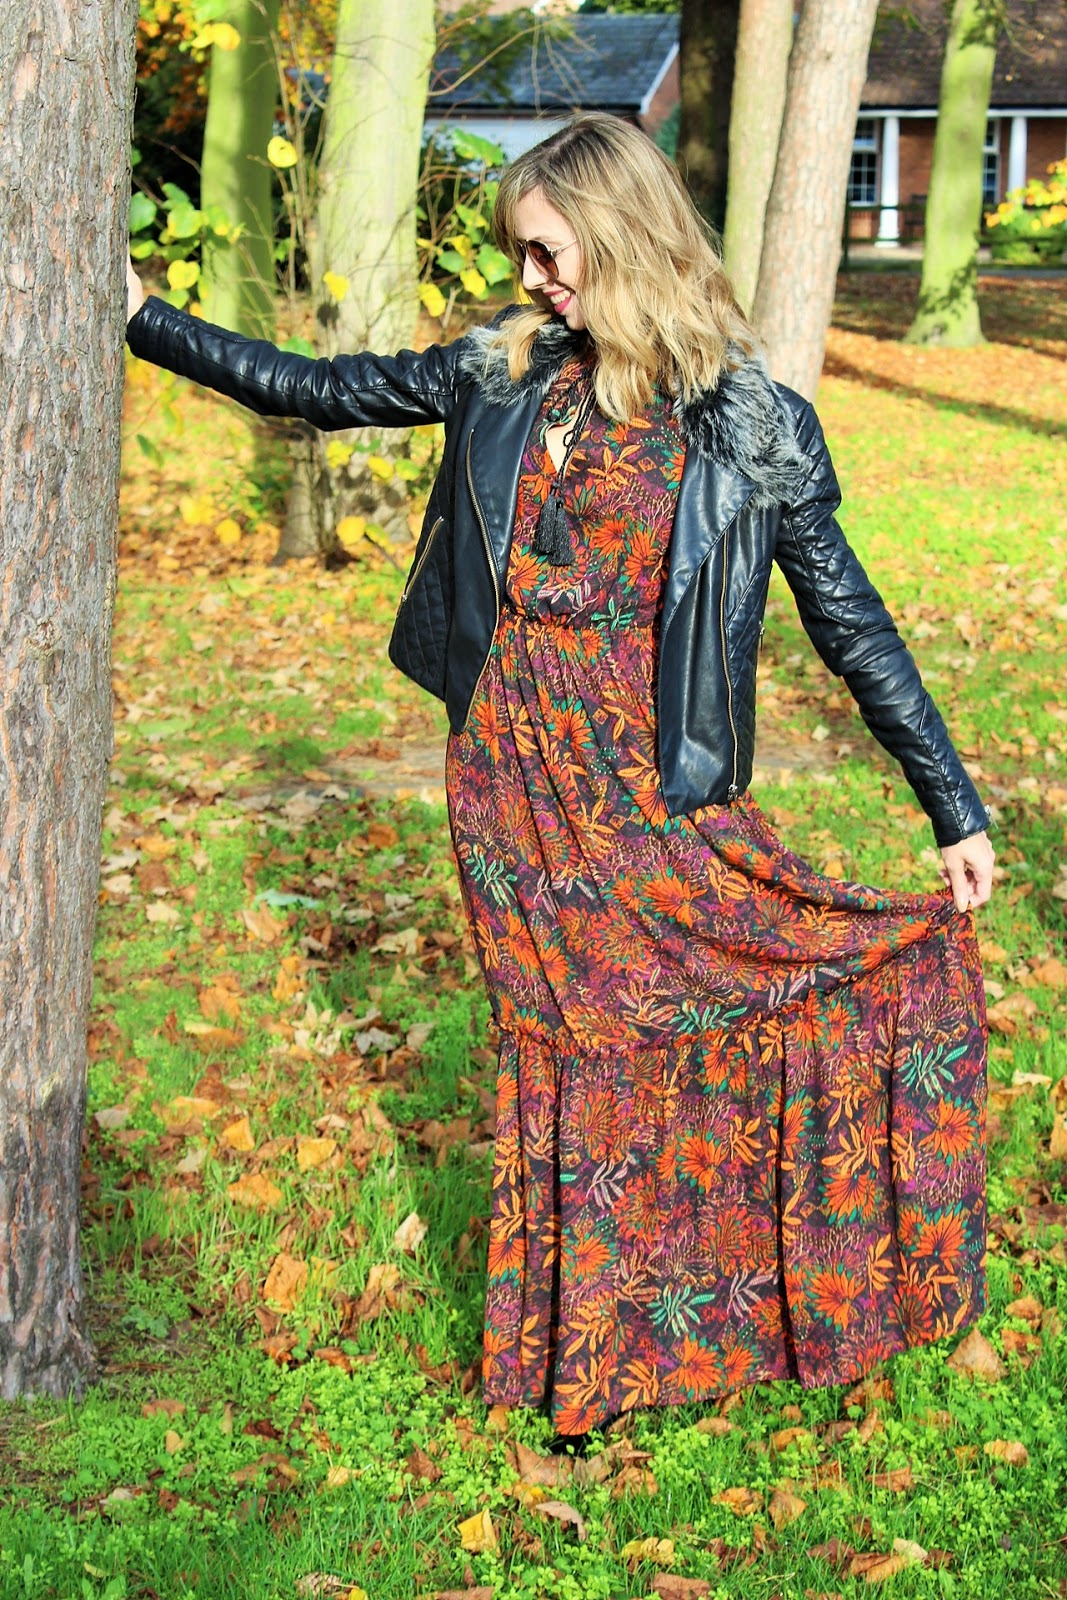 OOTD featuring H&M floral maxi dress - Autumn/Winter 2015